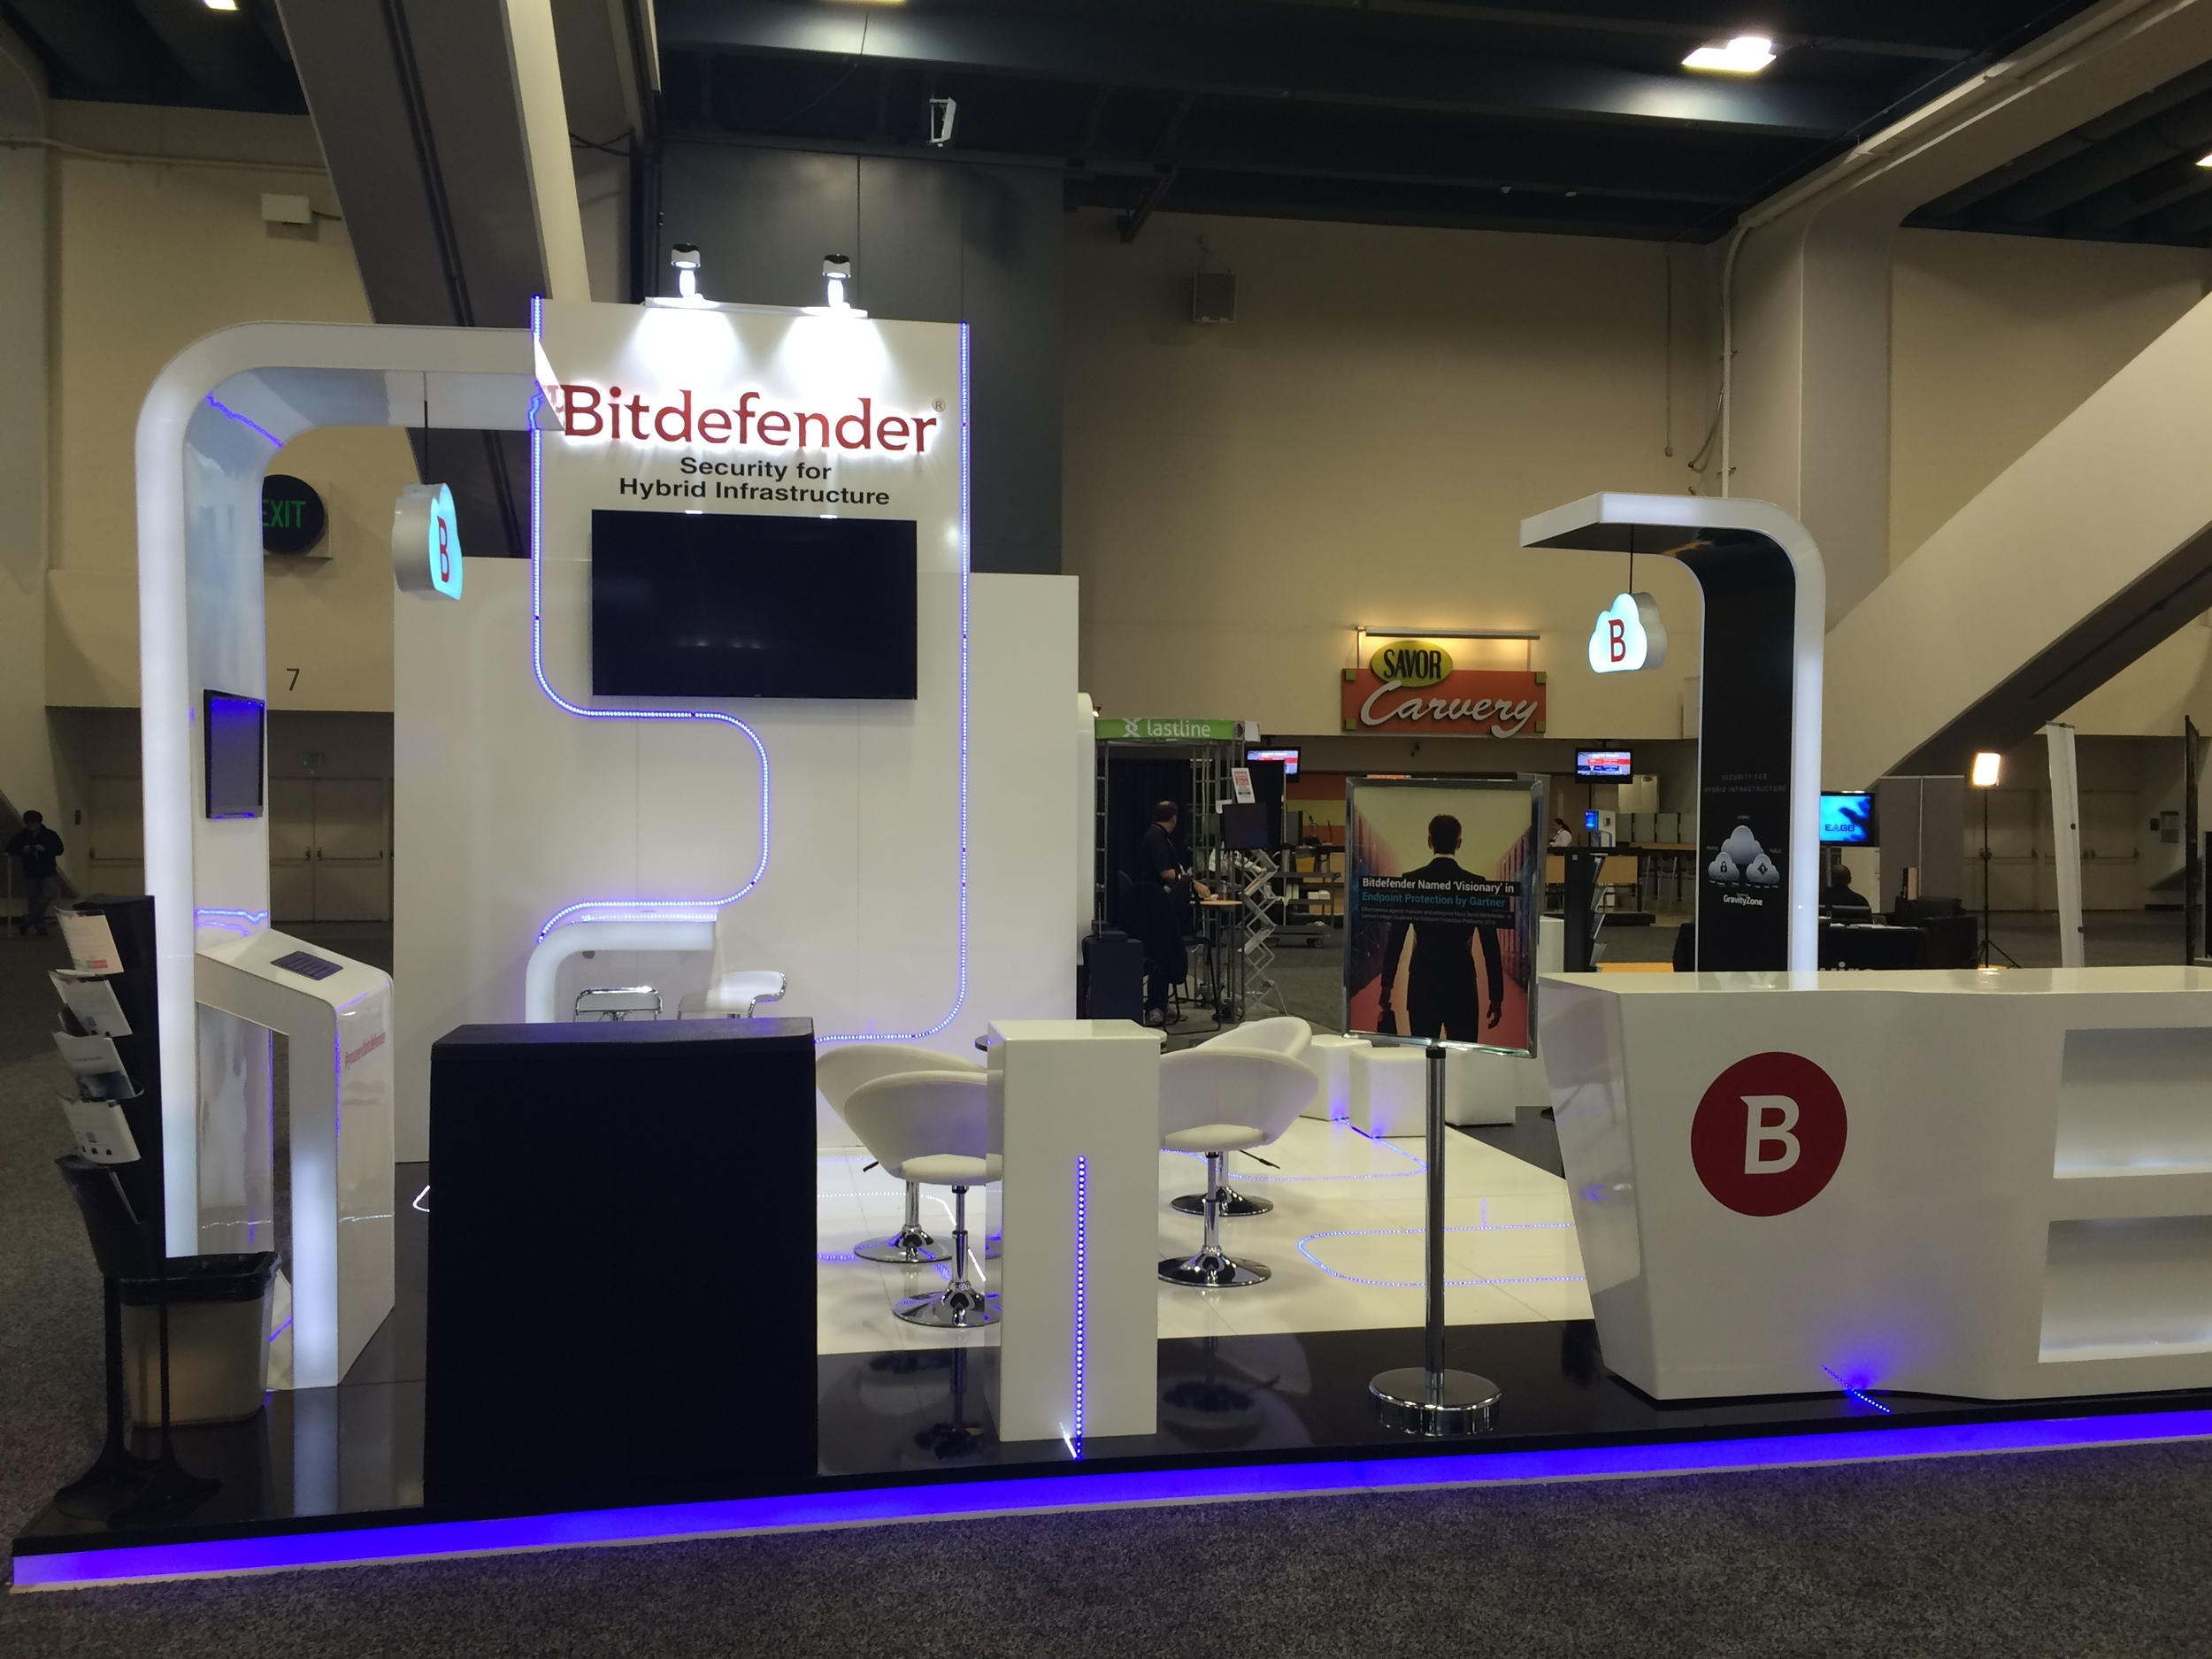 Bitdefender exhibit booth at RSA 2016, San Francisco